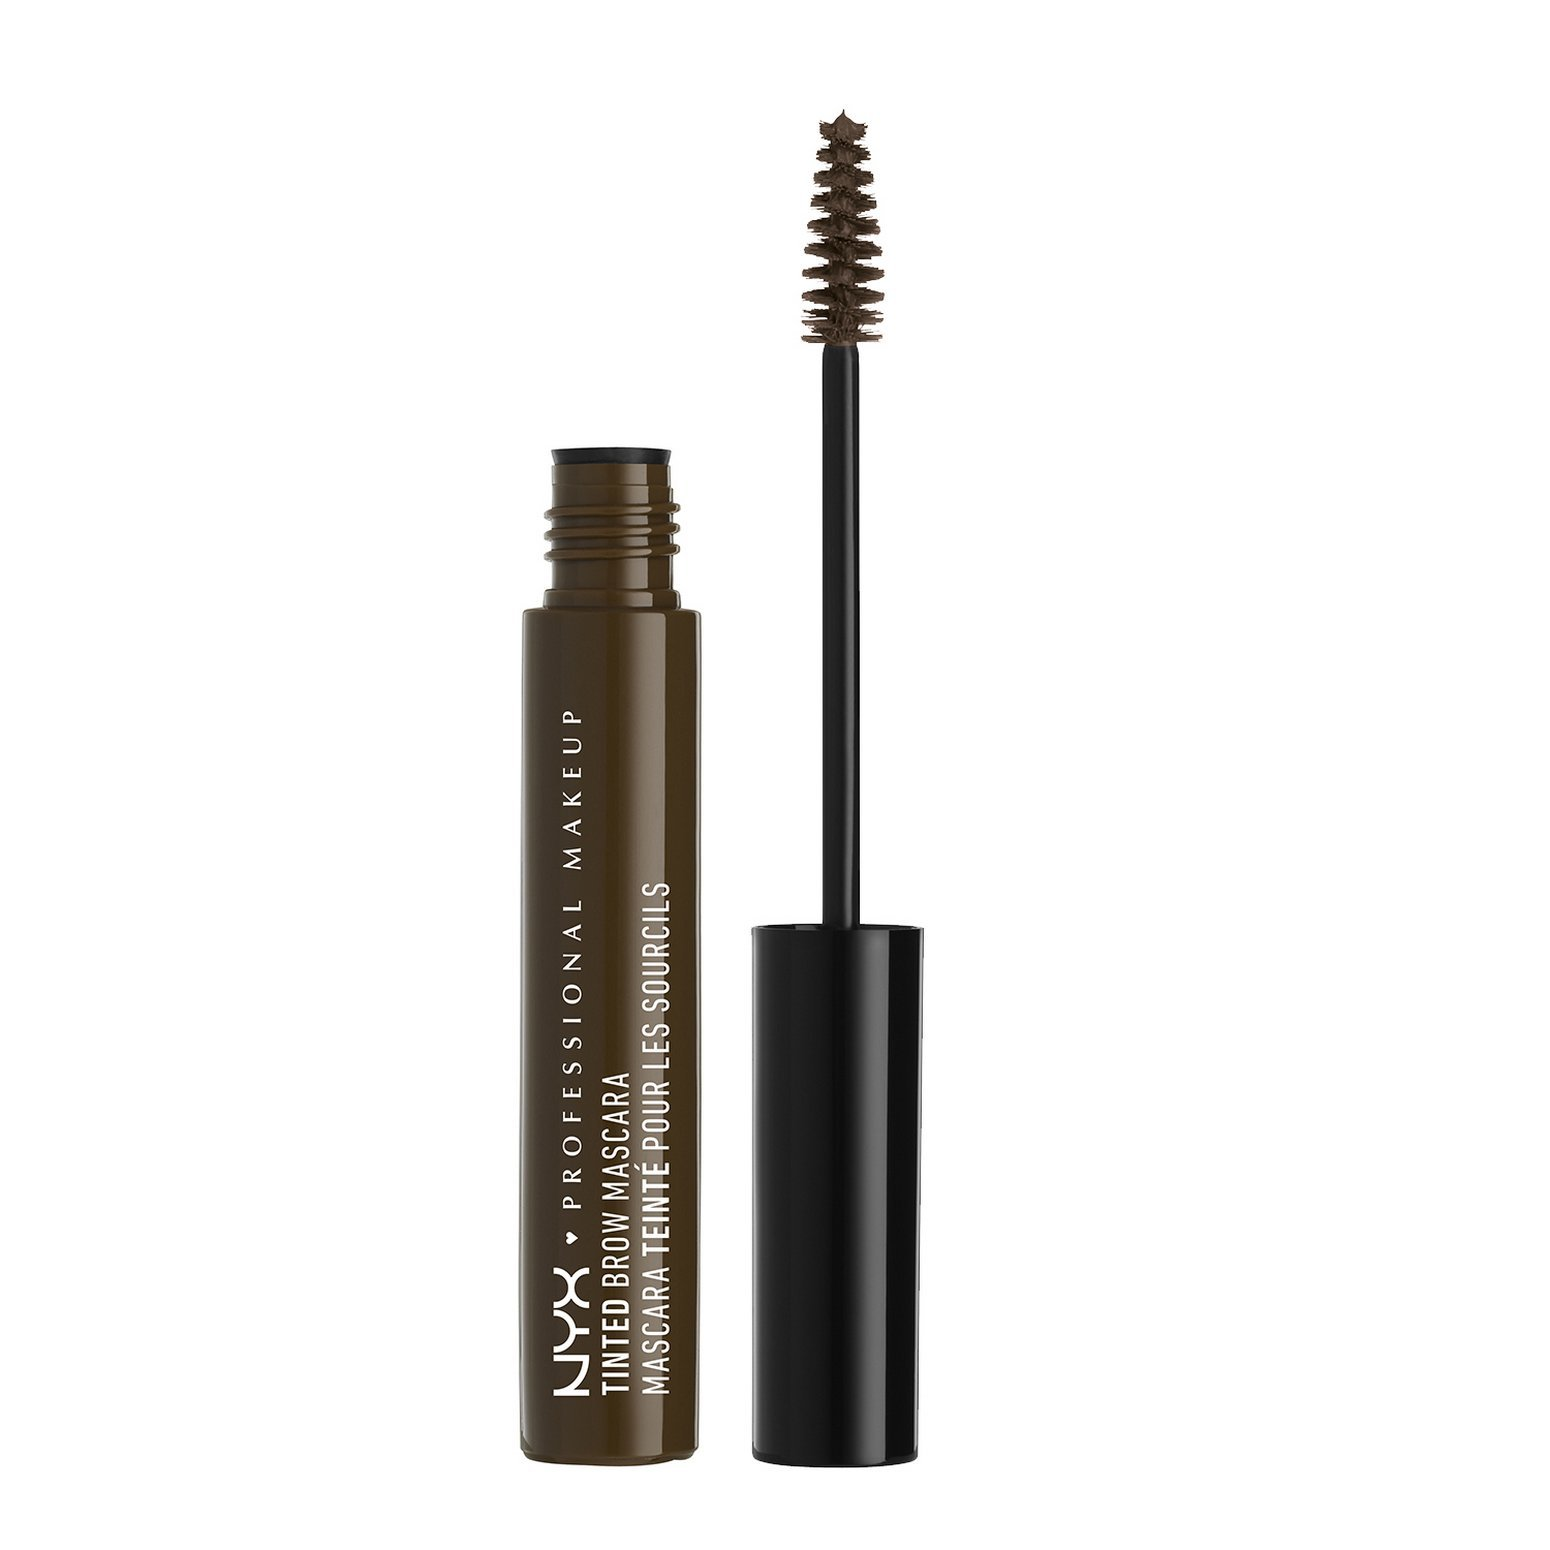 NYX PROFESSIONAL MAKEUP Tinted Brow Mascara, Espresso, 0.22 Fluid Ounce